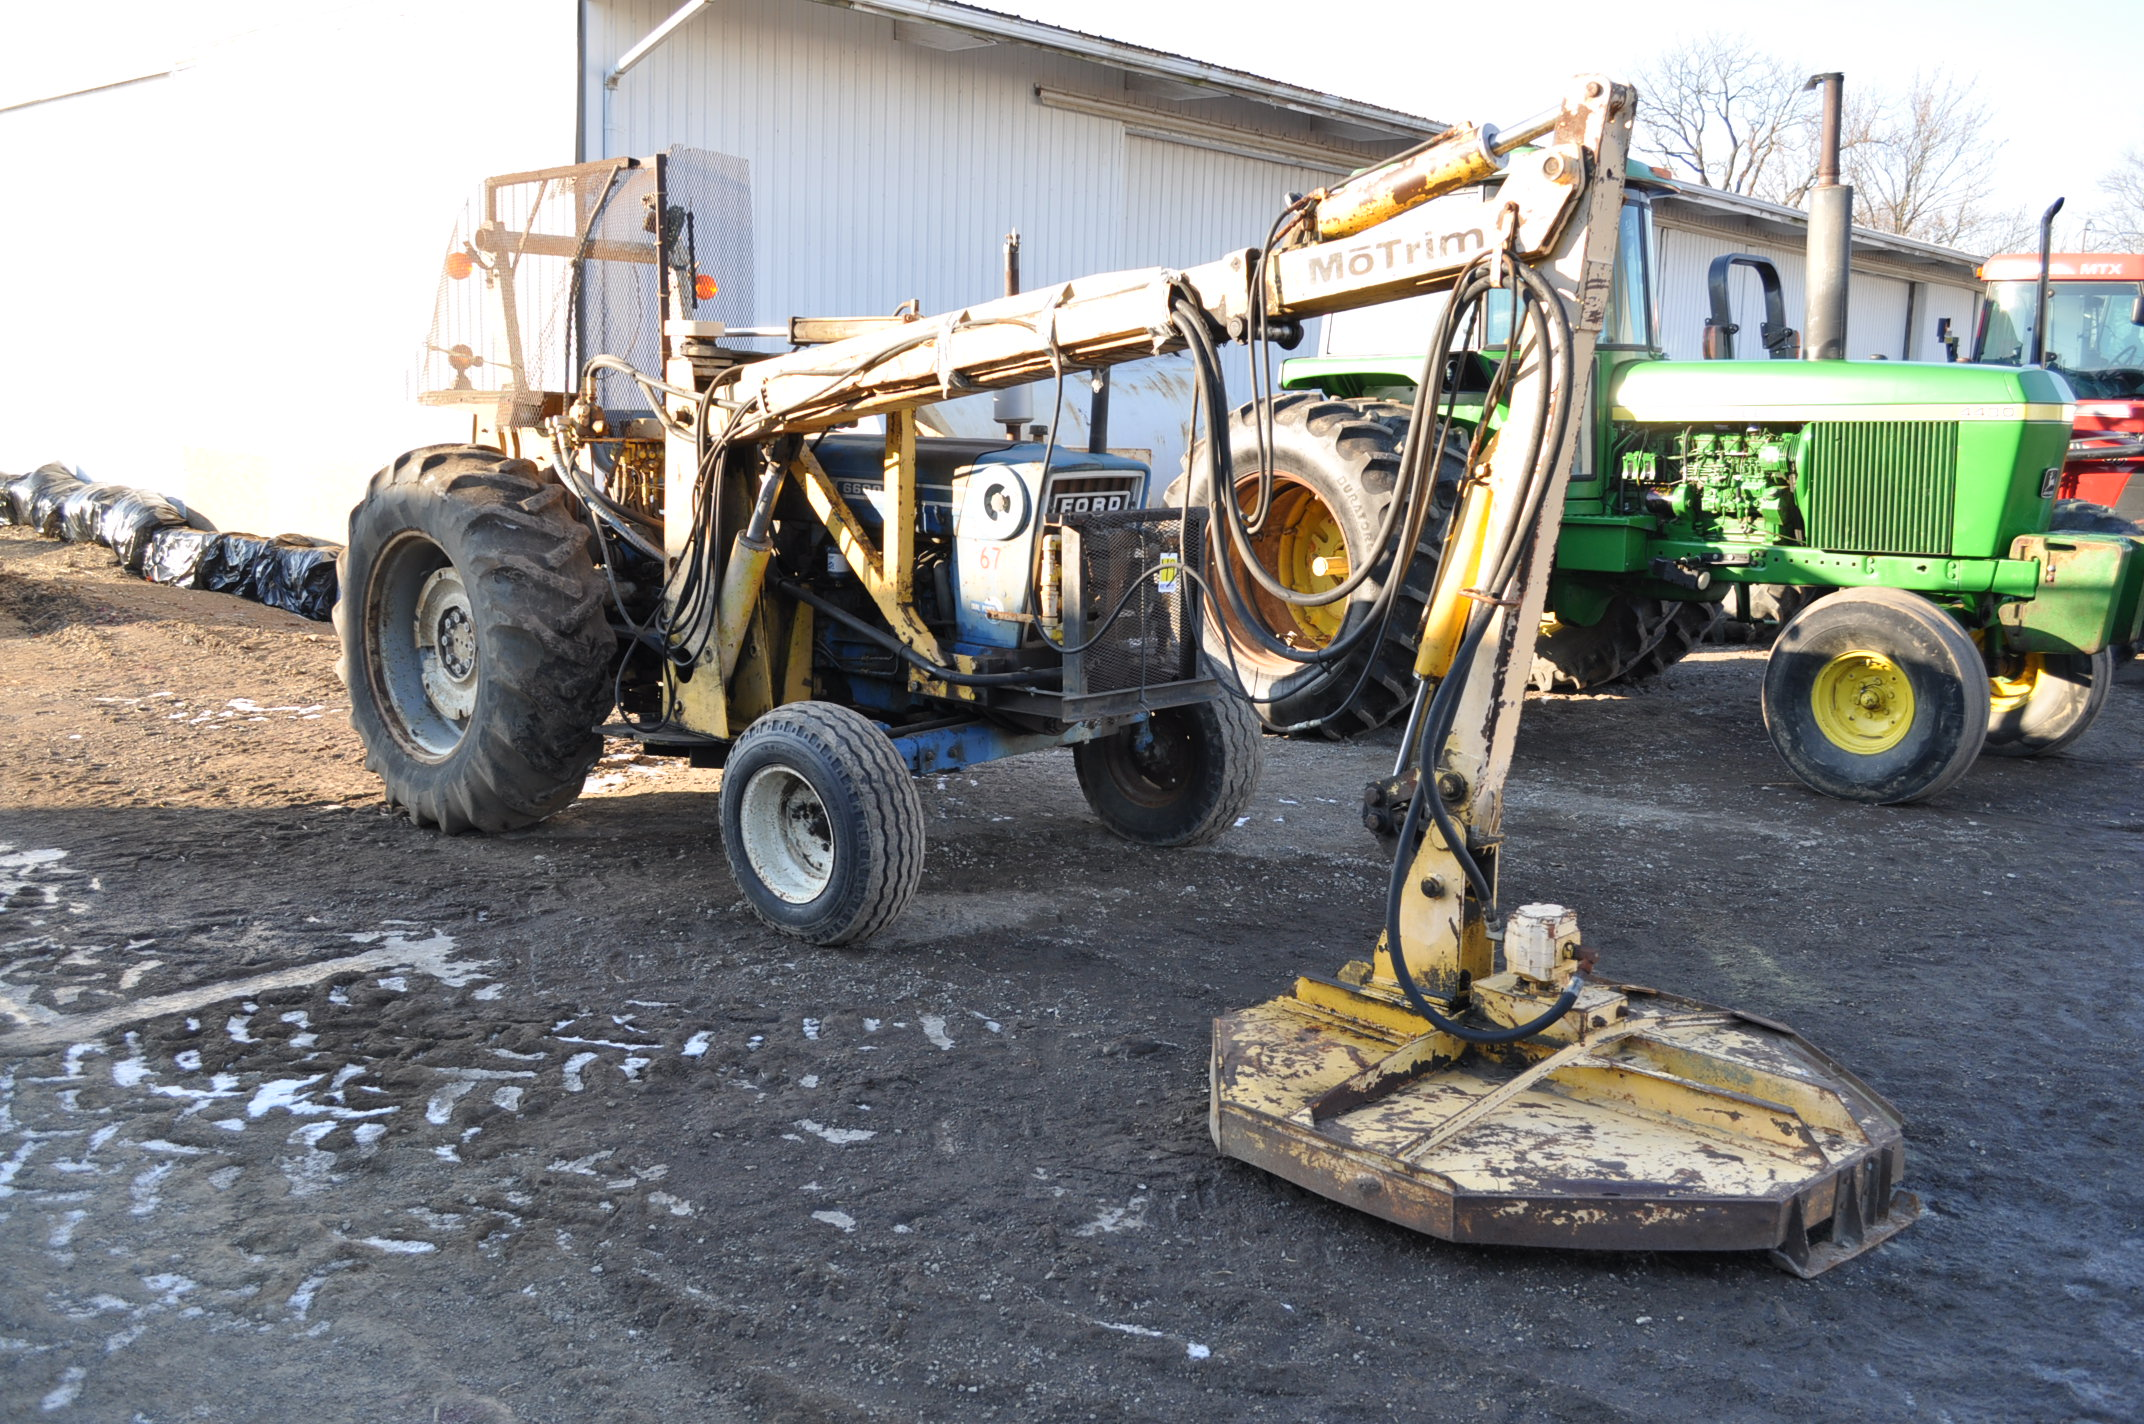 Ford 6600 tractor with MoTrim side arm mower, diesel, dual power, 540 PTO, hyd telescoping arm w/ - Image 5 of 18